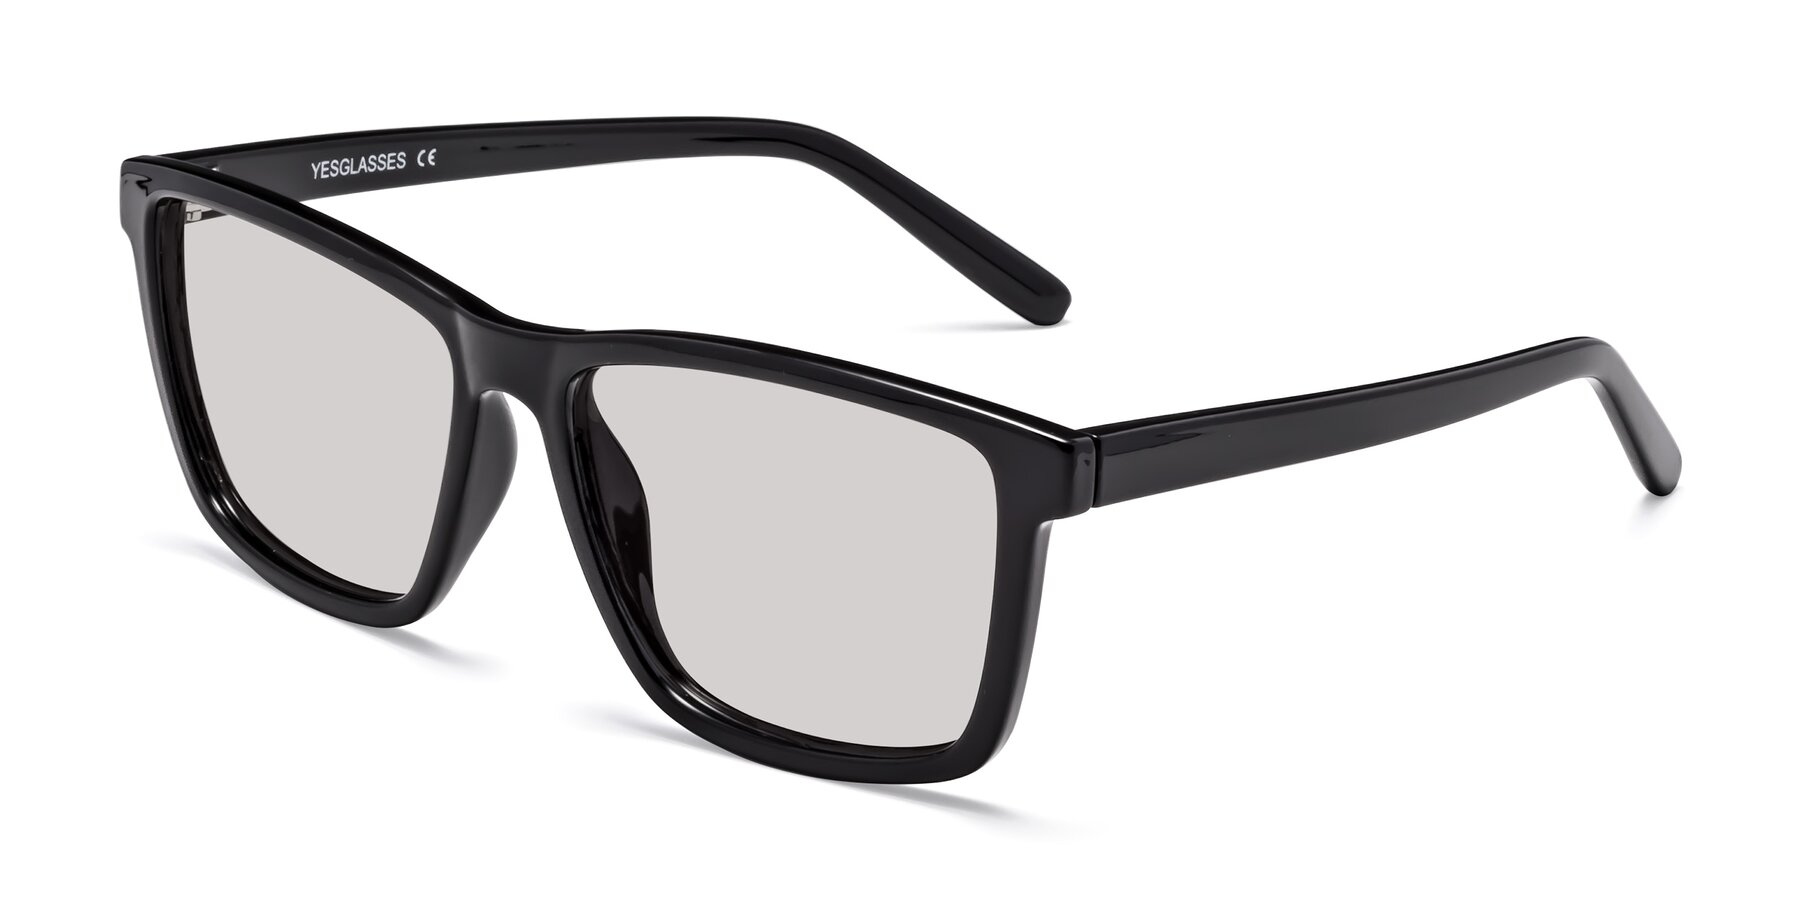 Angle of Sheldon in Black with Light Gray Tinted Lenses